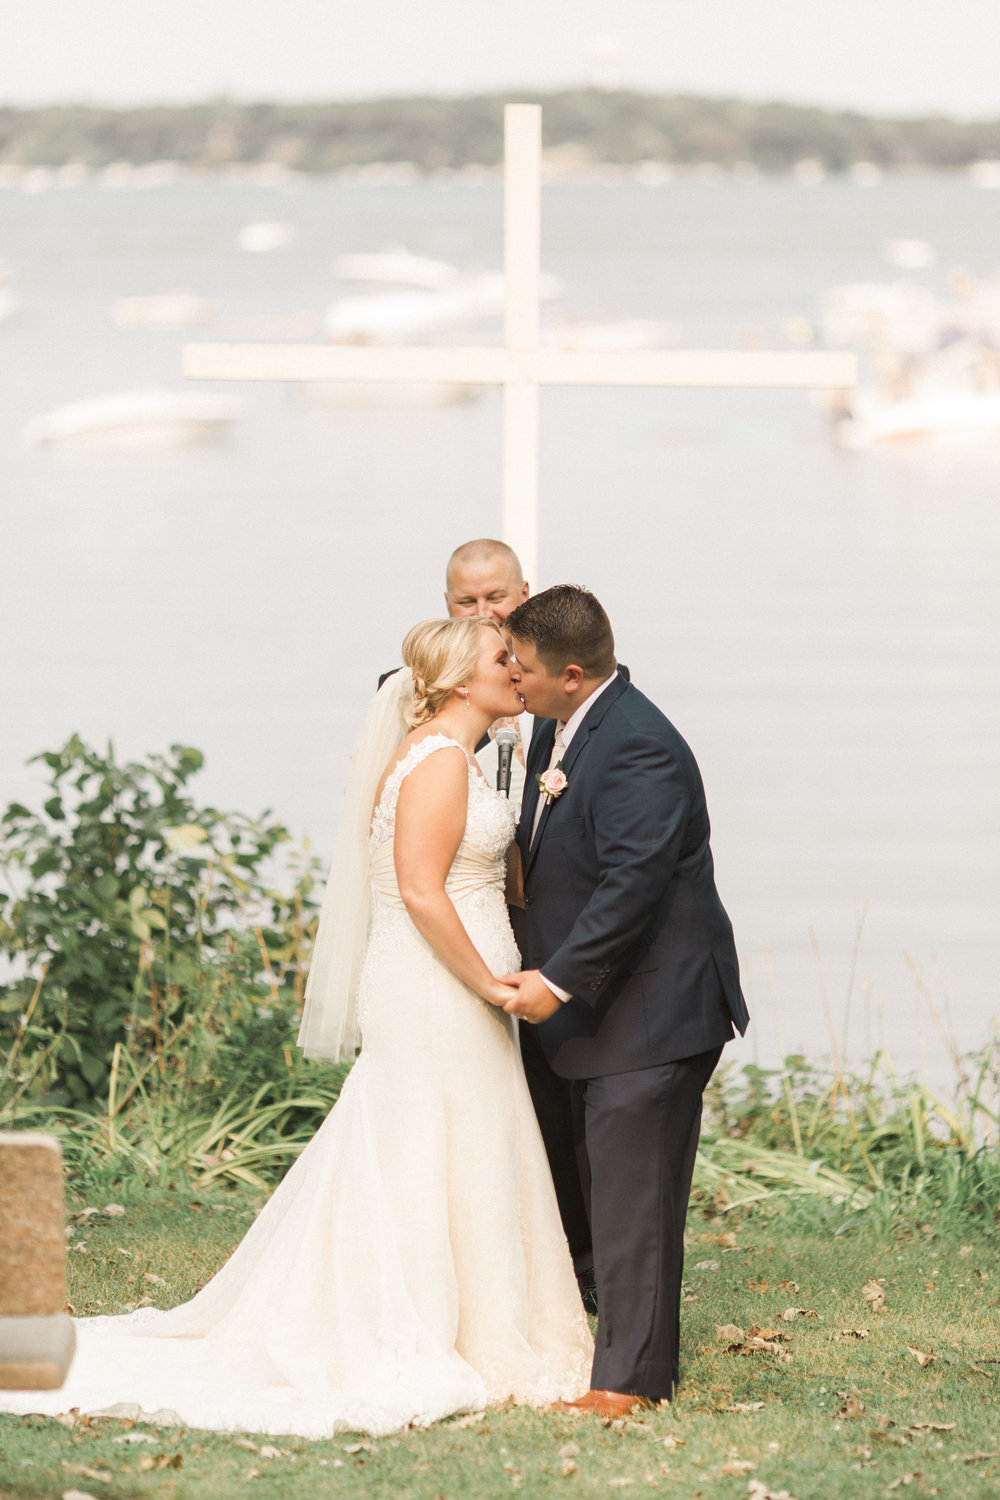 kiss-the-bride-ceremony-photo-lake-view-outdoor-iowa-wedding